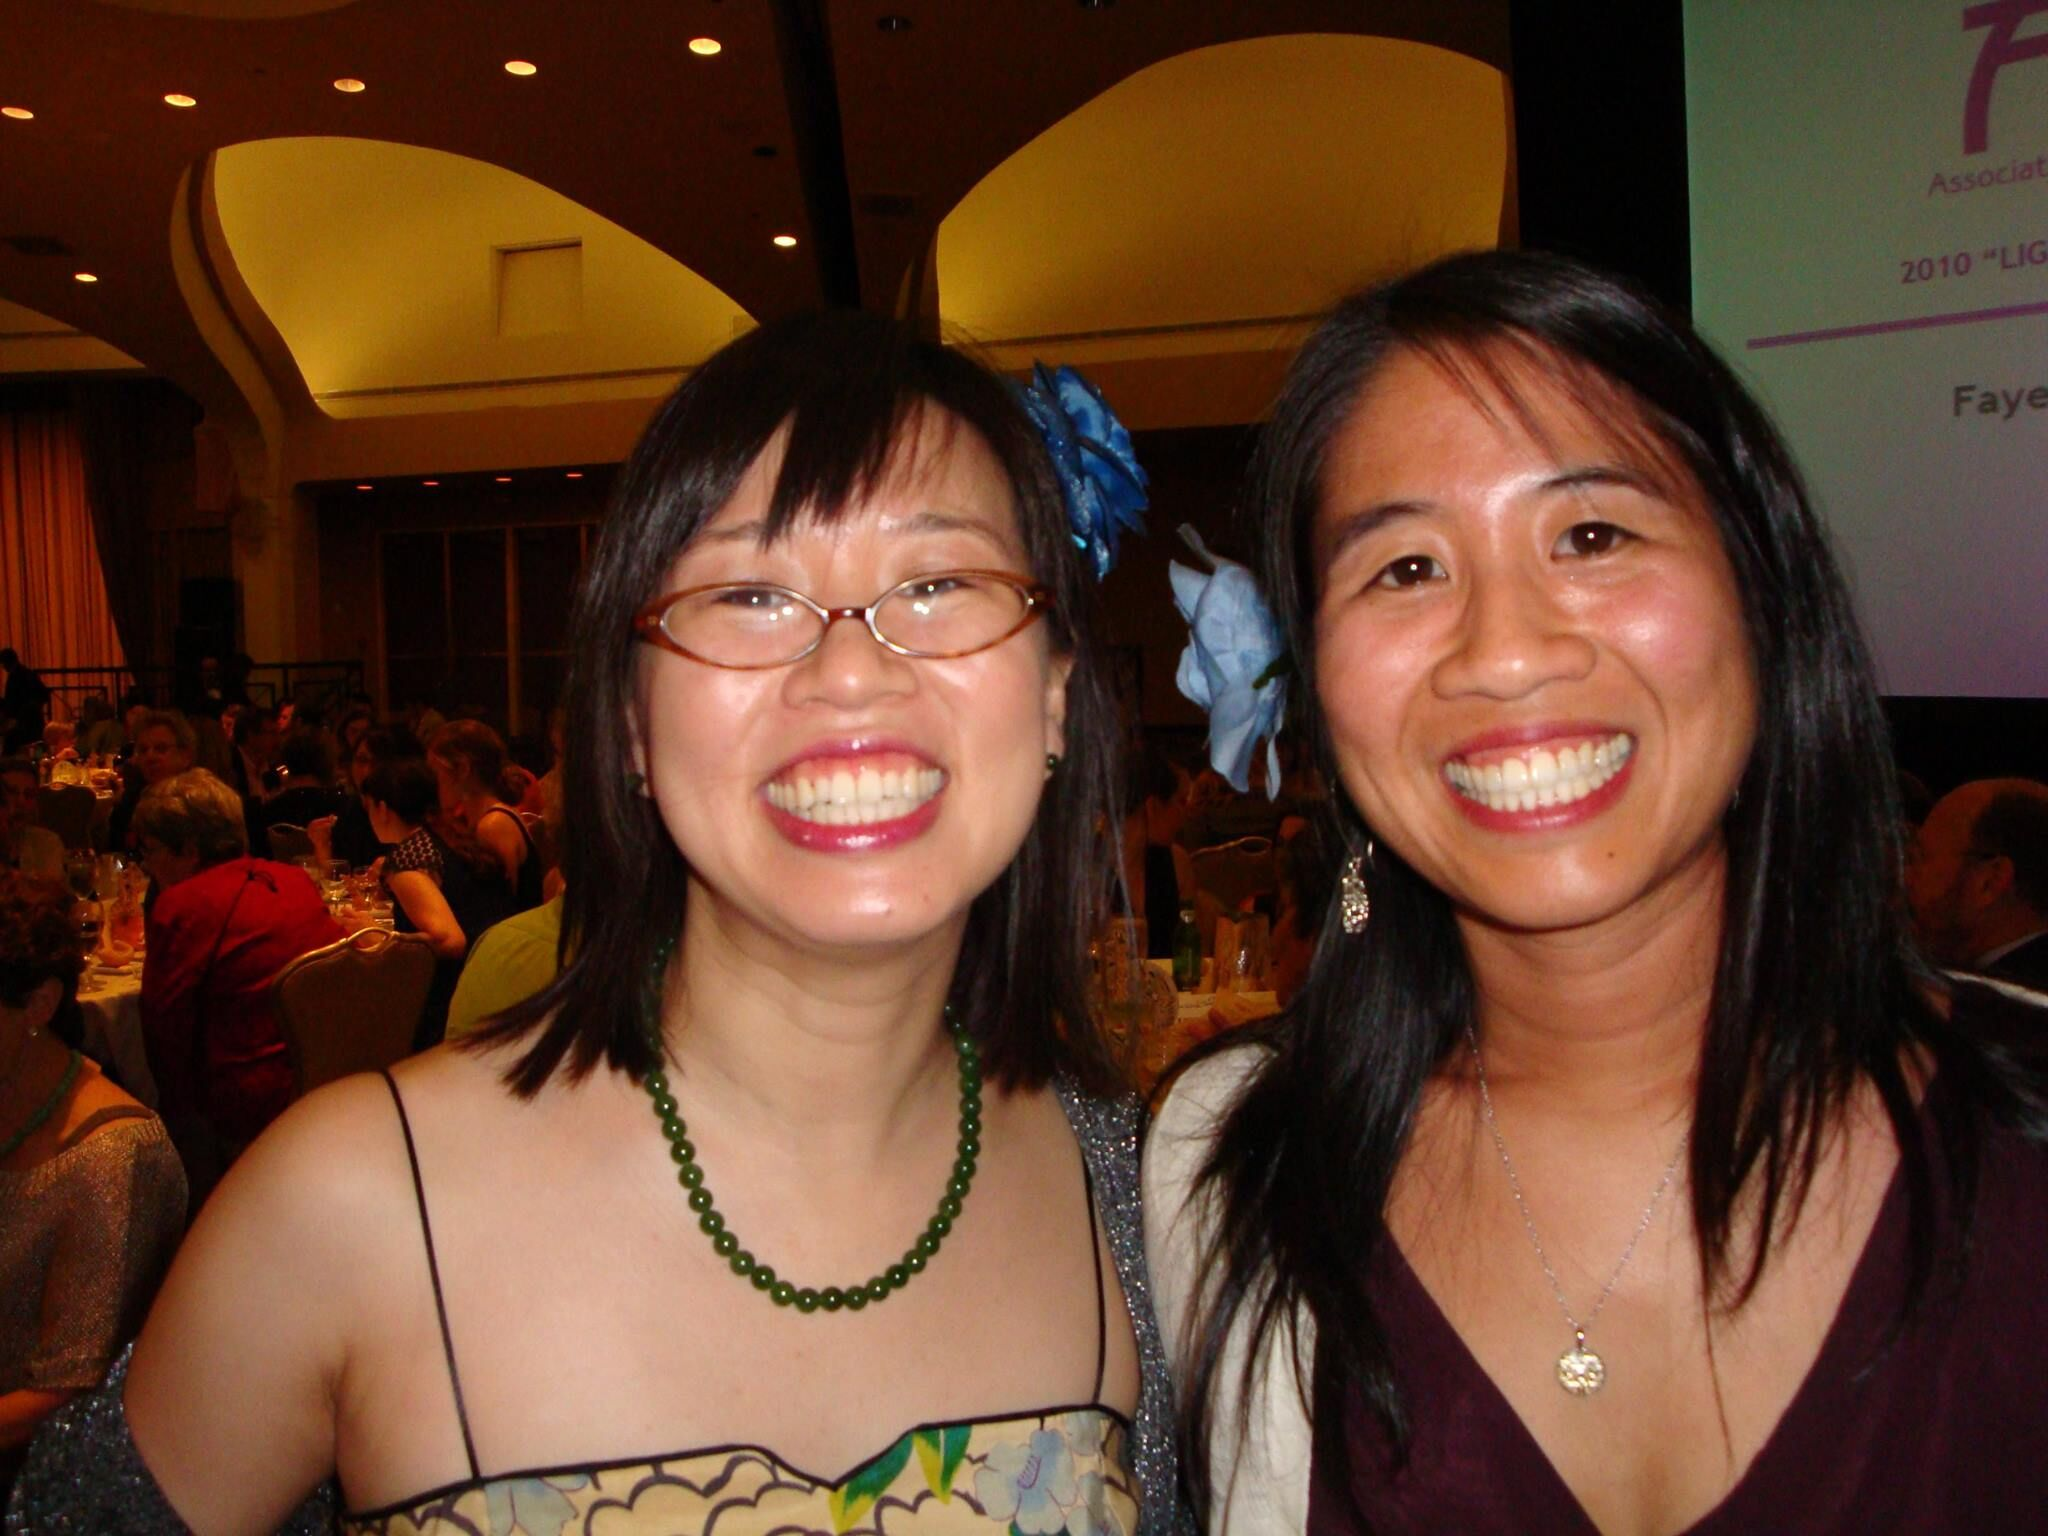 Grace and Alvina at the Newberry Awards Ceremony in 2010!